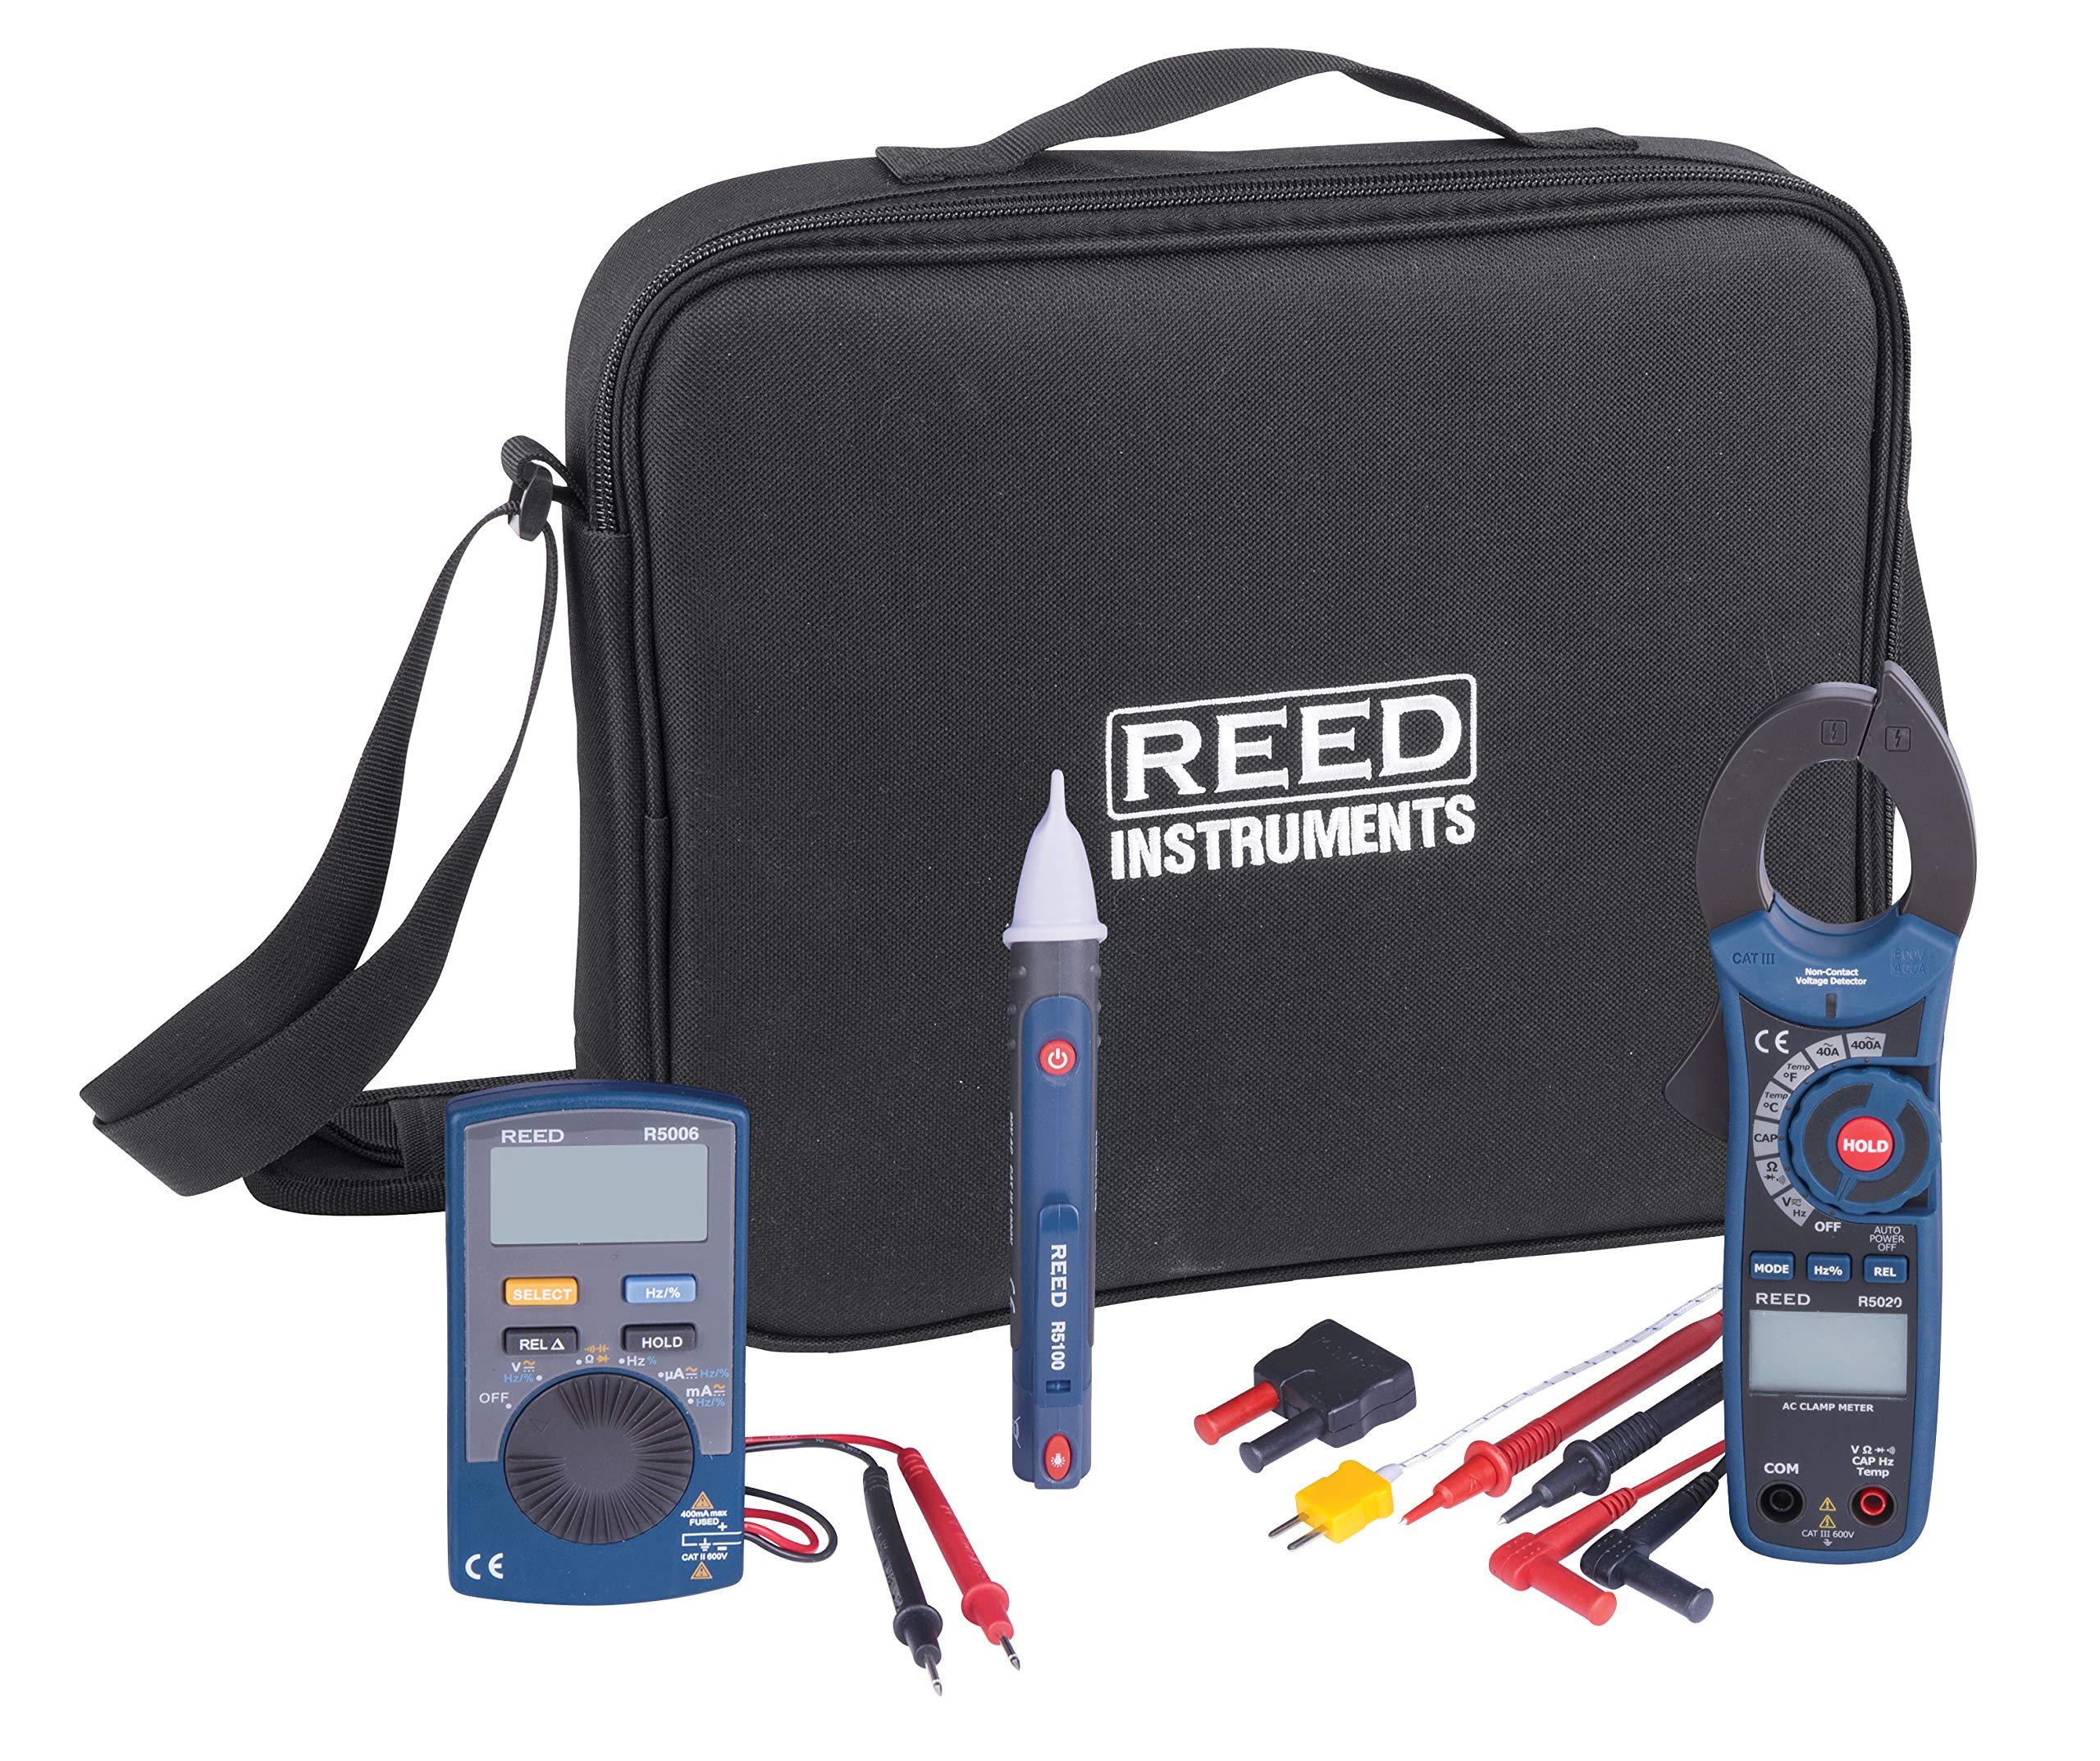 Reed ST-ELECTRICKIT Electrician's Kit with Continuity Tester, Clamp Meter, Voltage Detector, Thermocouple Probe, Input Adapter, and Test Leads